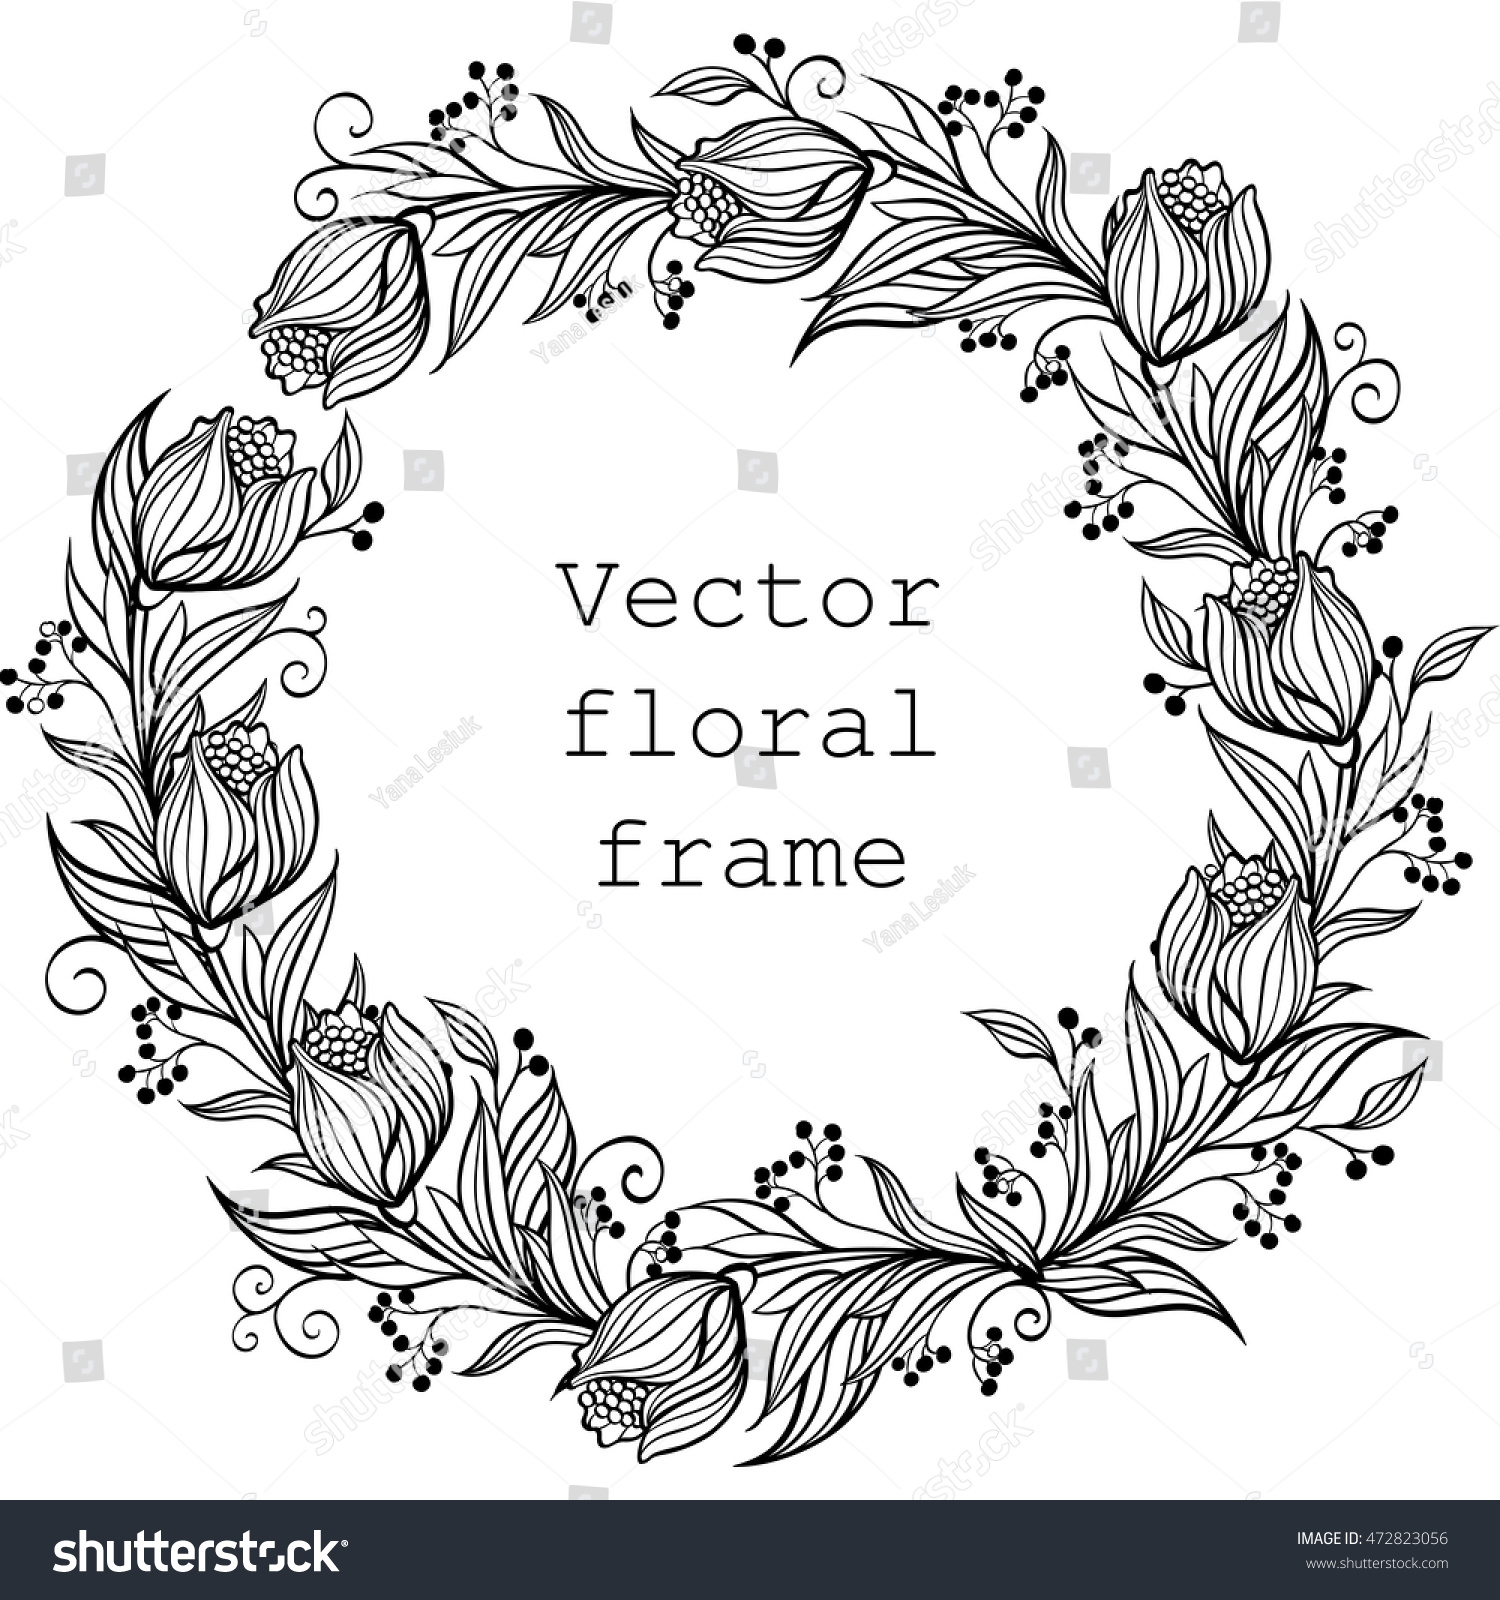 Royalty Free Vector Wreath Floral Frame Round 472823056 Stock